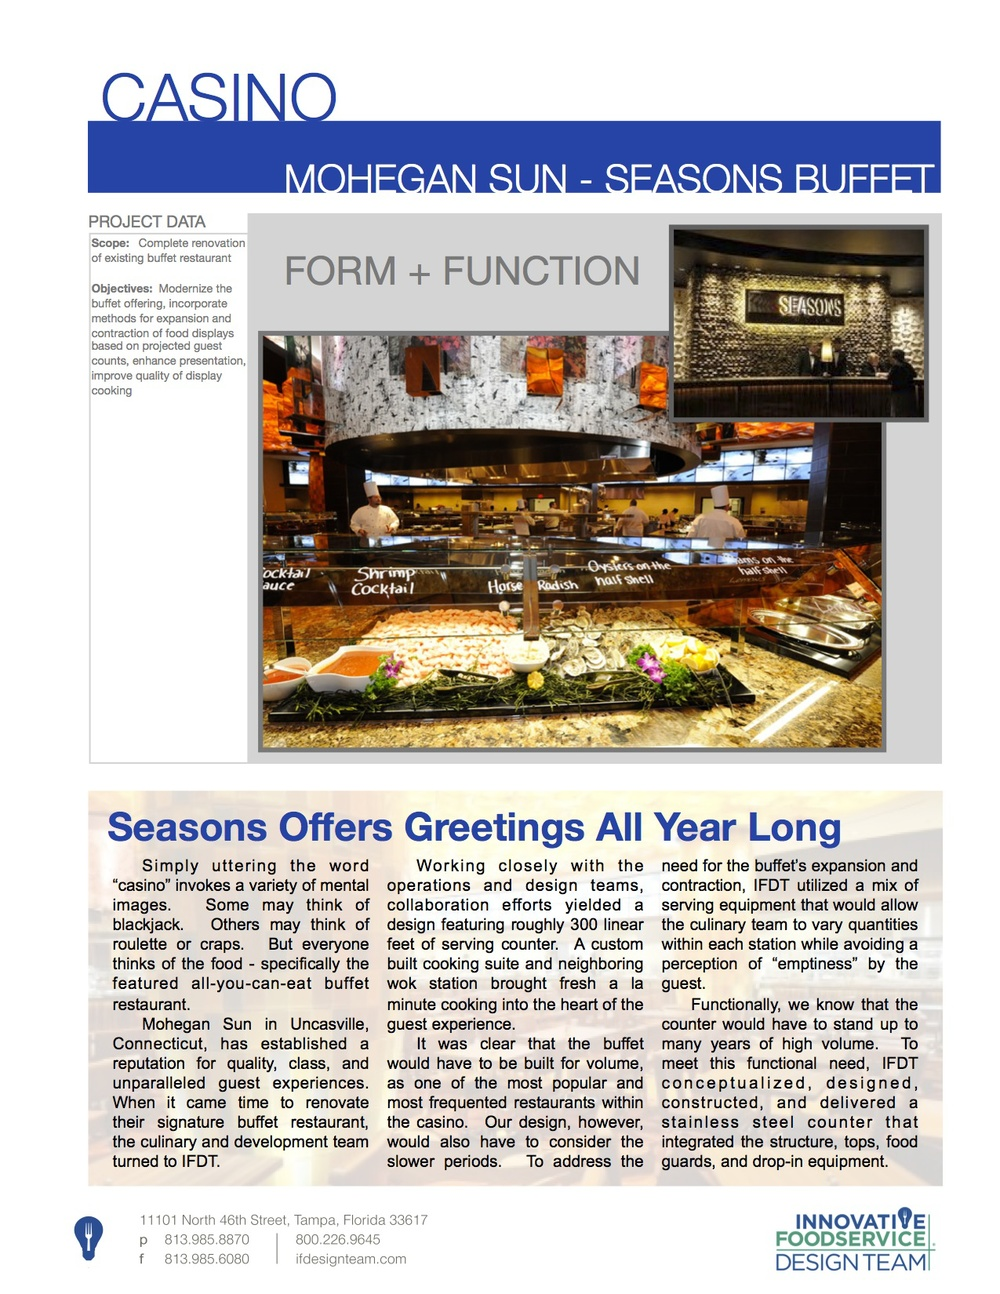 Mohegan Sun - Seasons Buffet.jpg